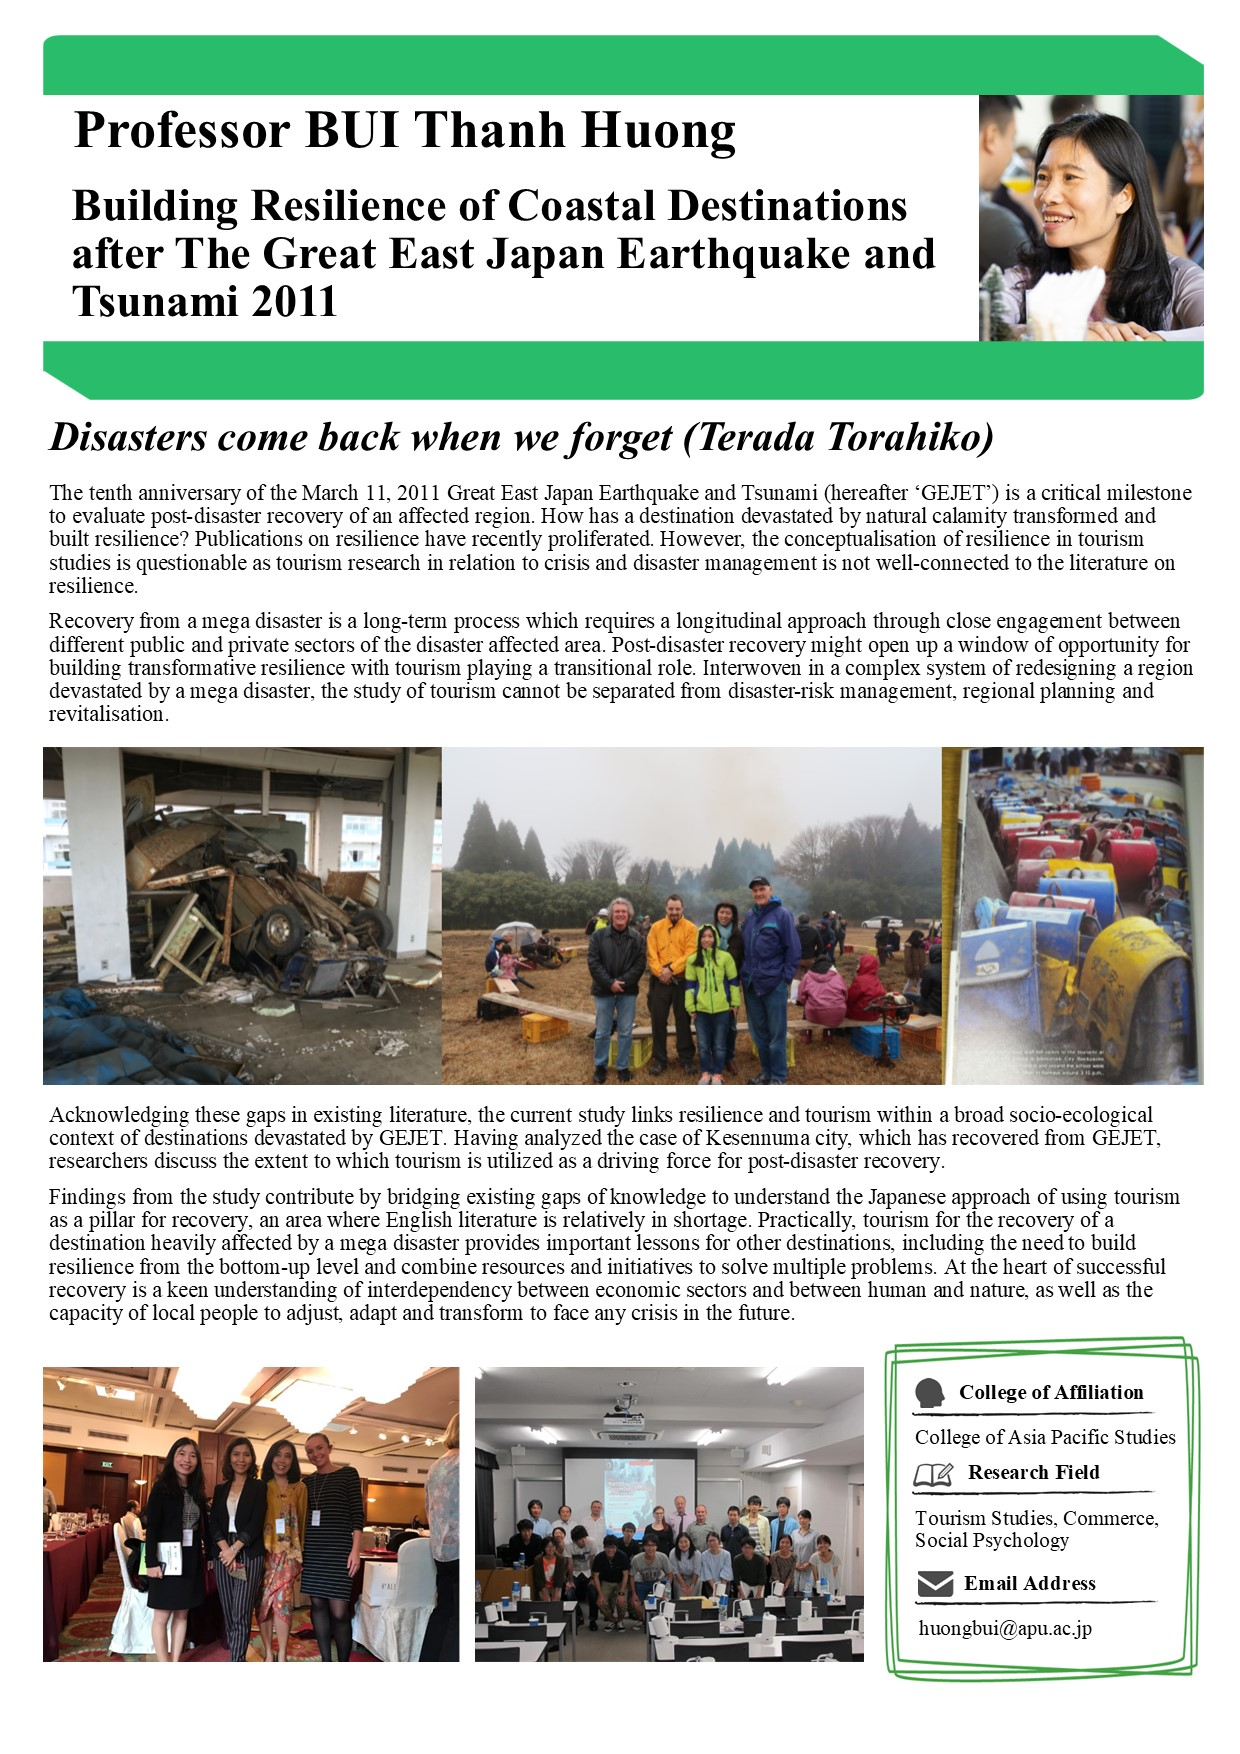 Building Resilience of Coastal Destinations after The Great East Japan Earthquake and Tsunami 2011